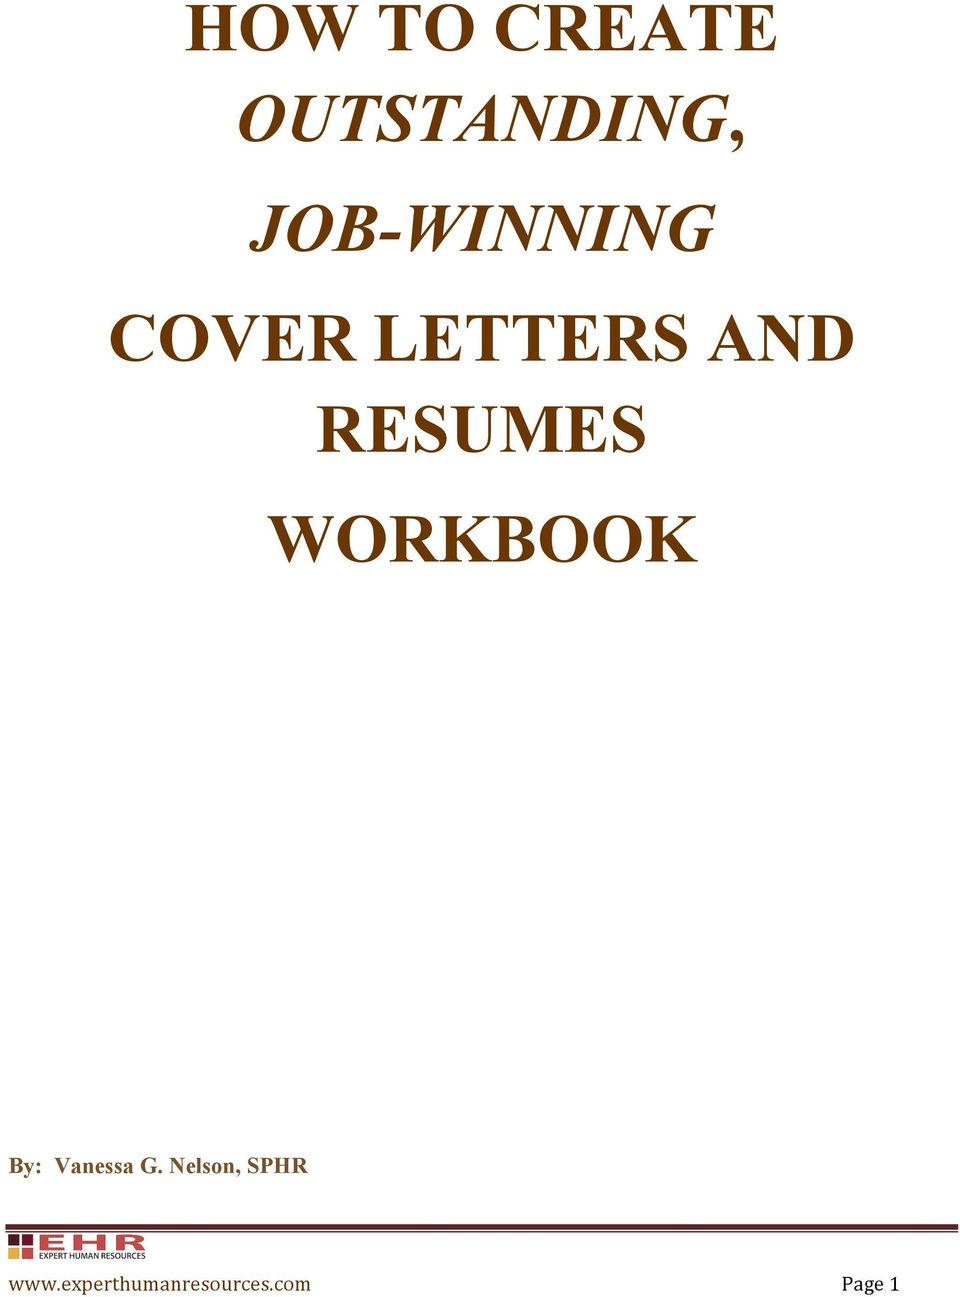 HOW TO CREATE OUTSTANDING, JOB-WINNING COVER LETTERS AND ...